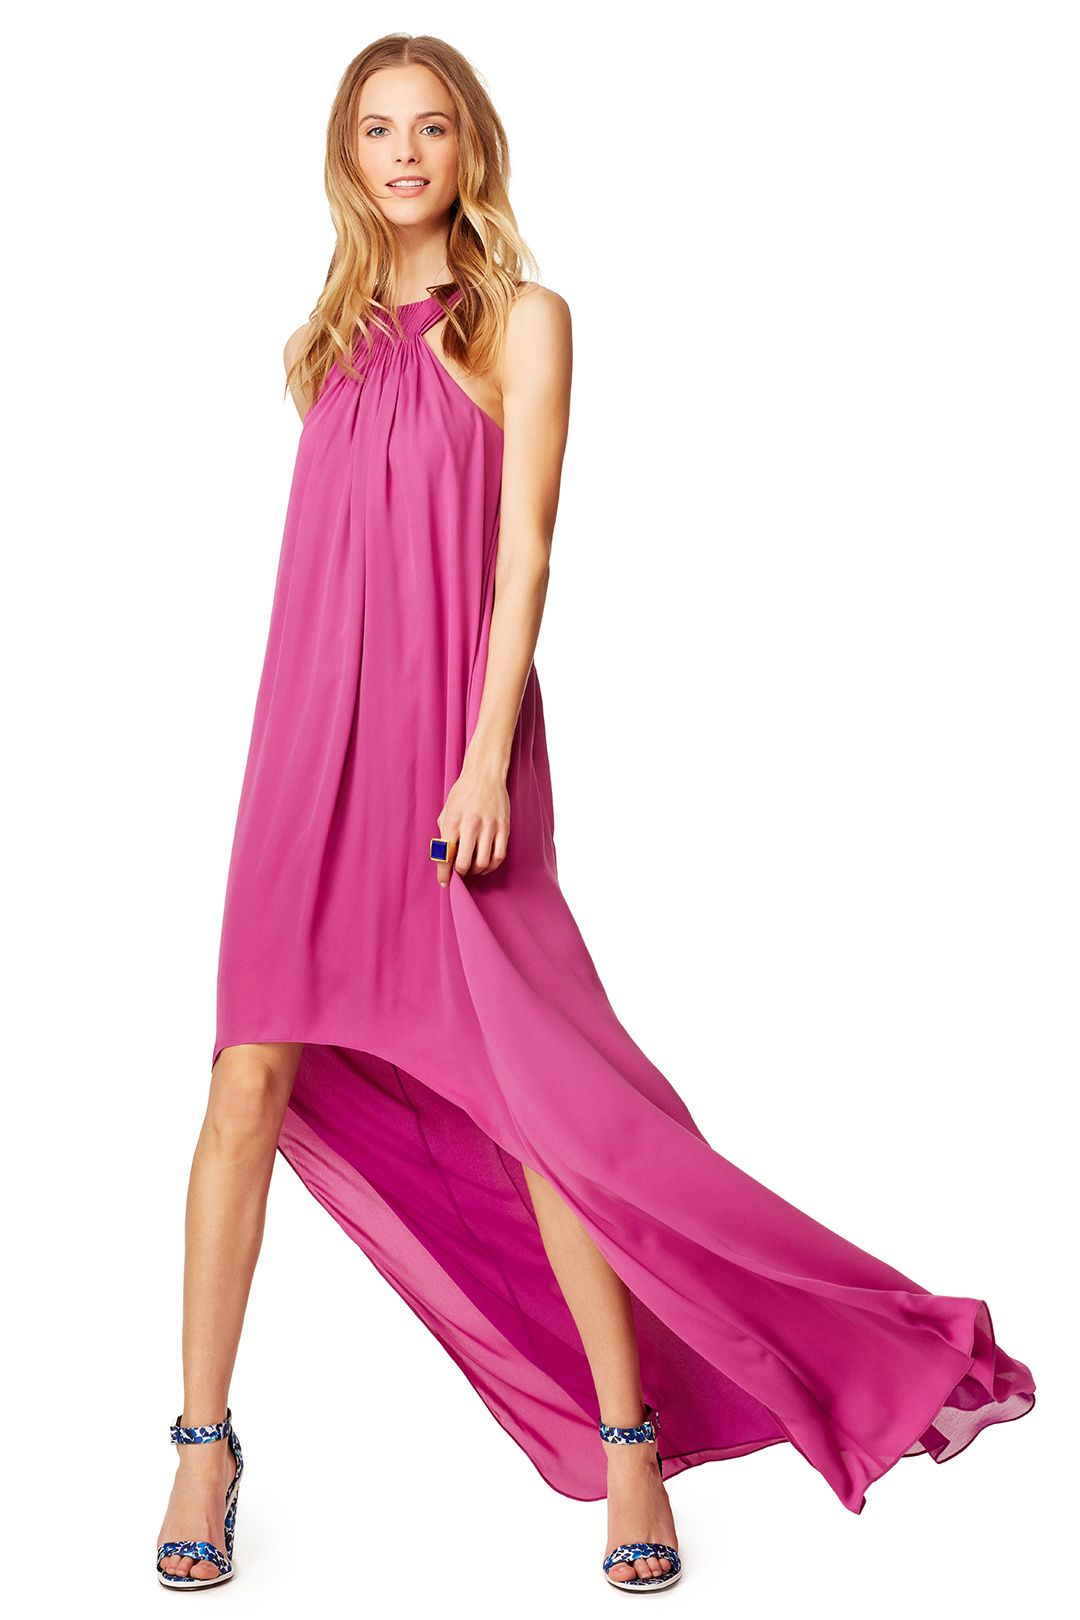 Maxi dresses to wear to a wedding   weddingready summer wedding guest styles  Halston heritage